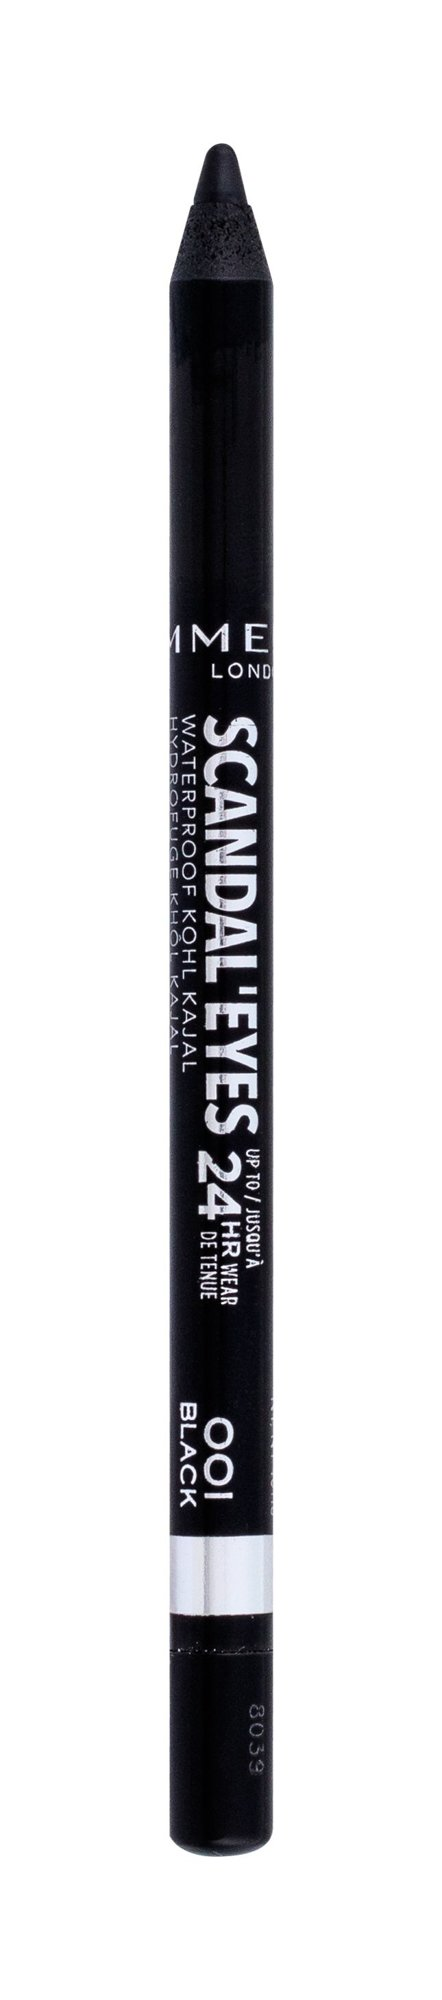 Rimmel London Scandal Eyes Eye Pencil 1,3ml 001 Black